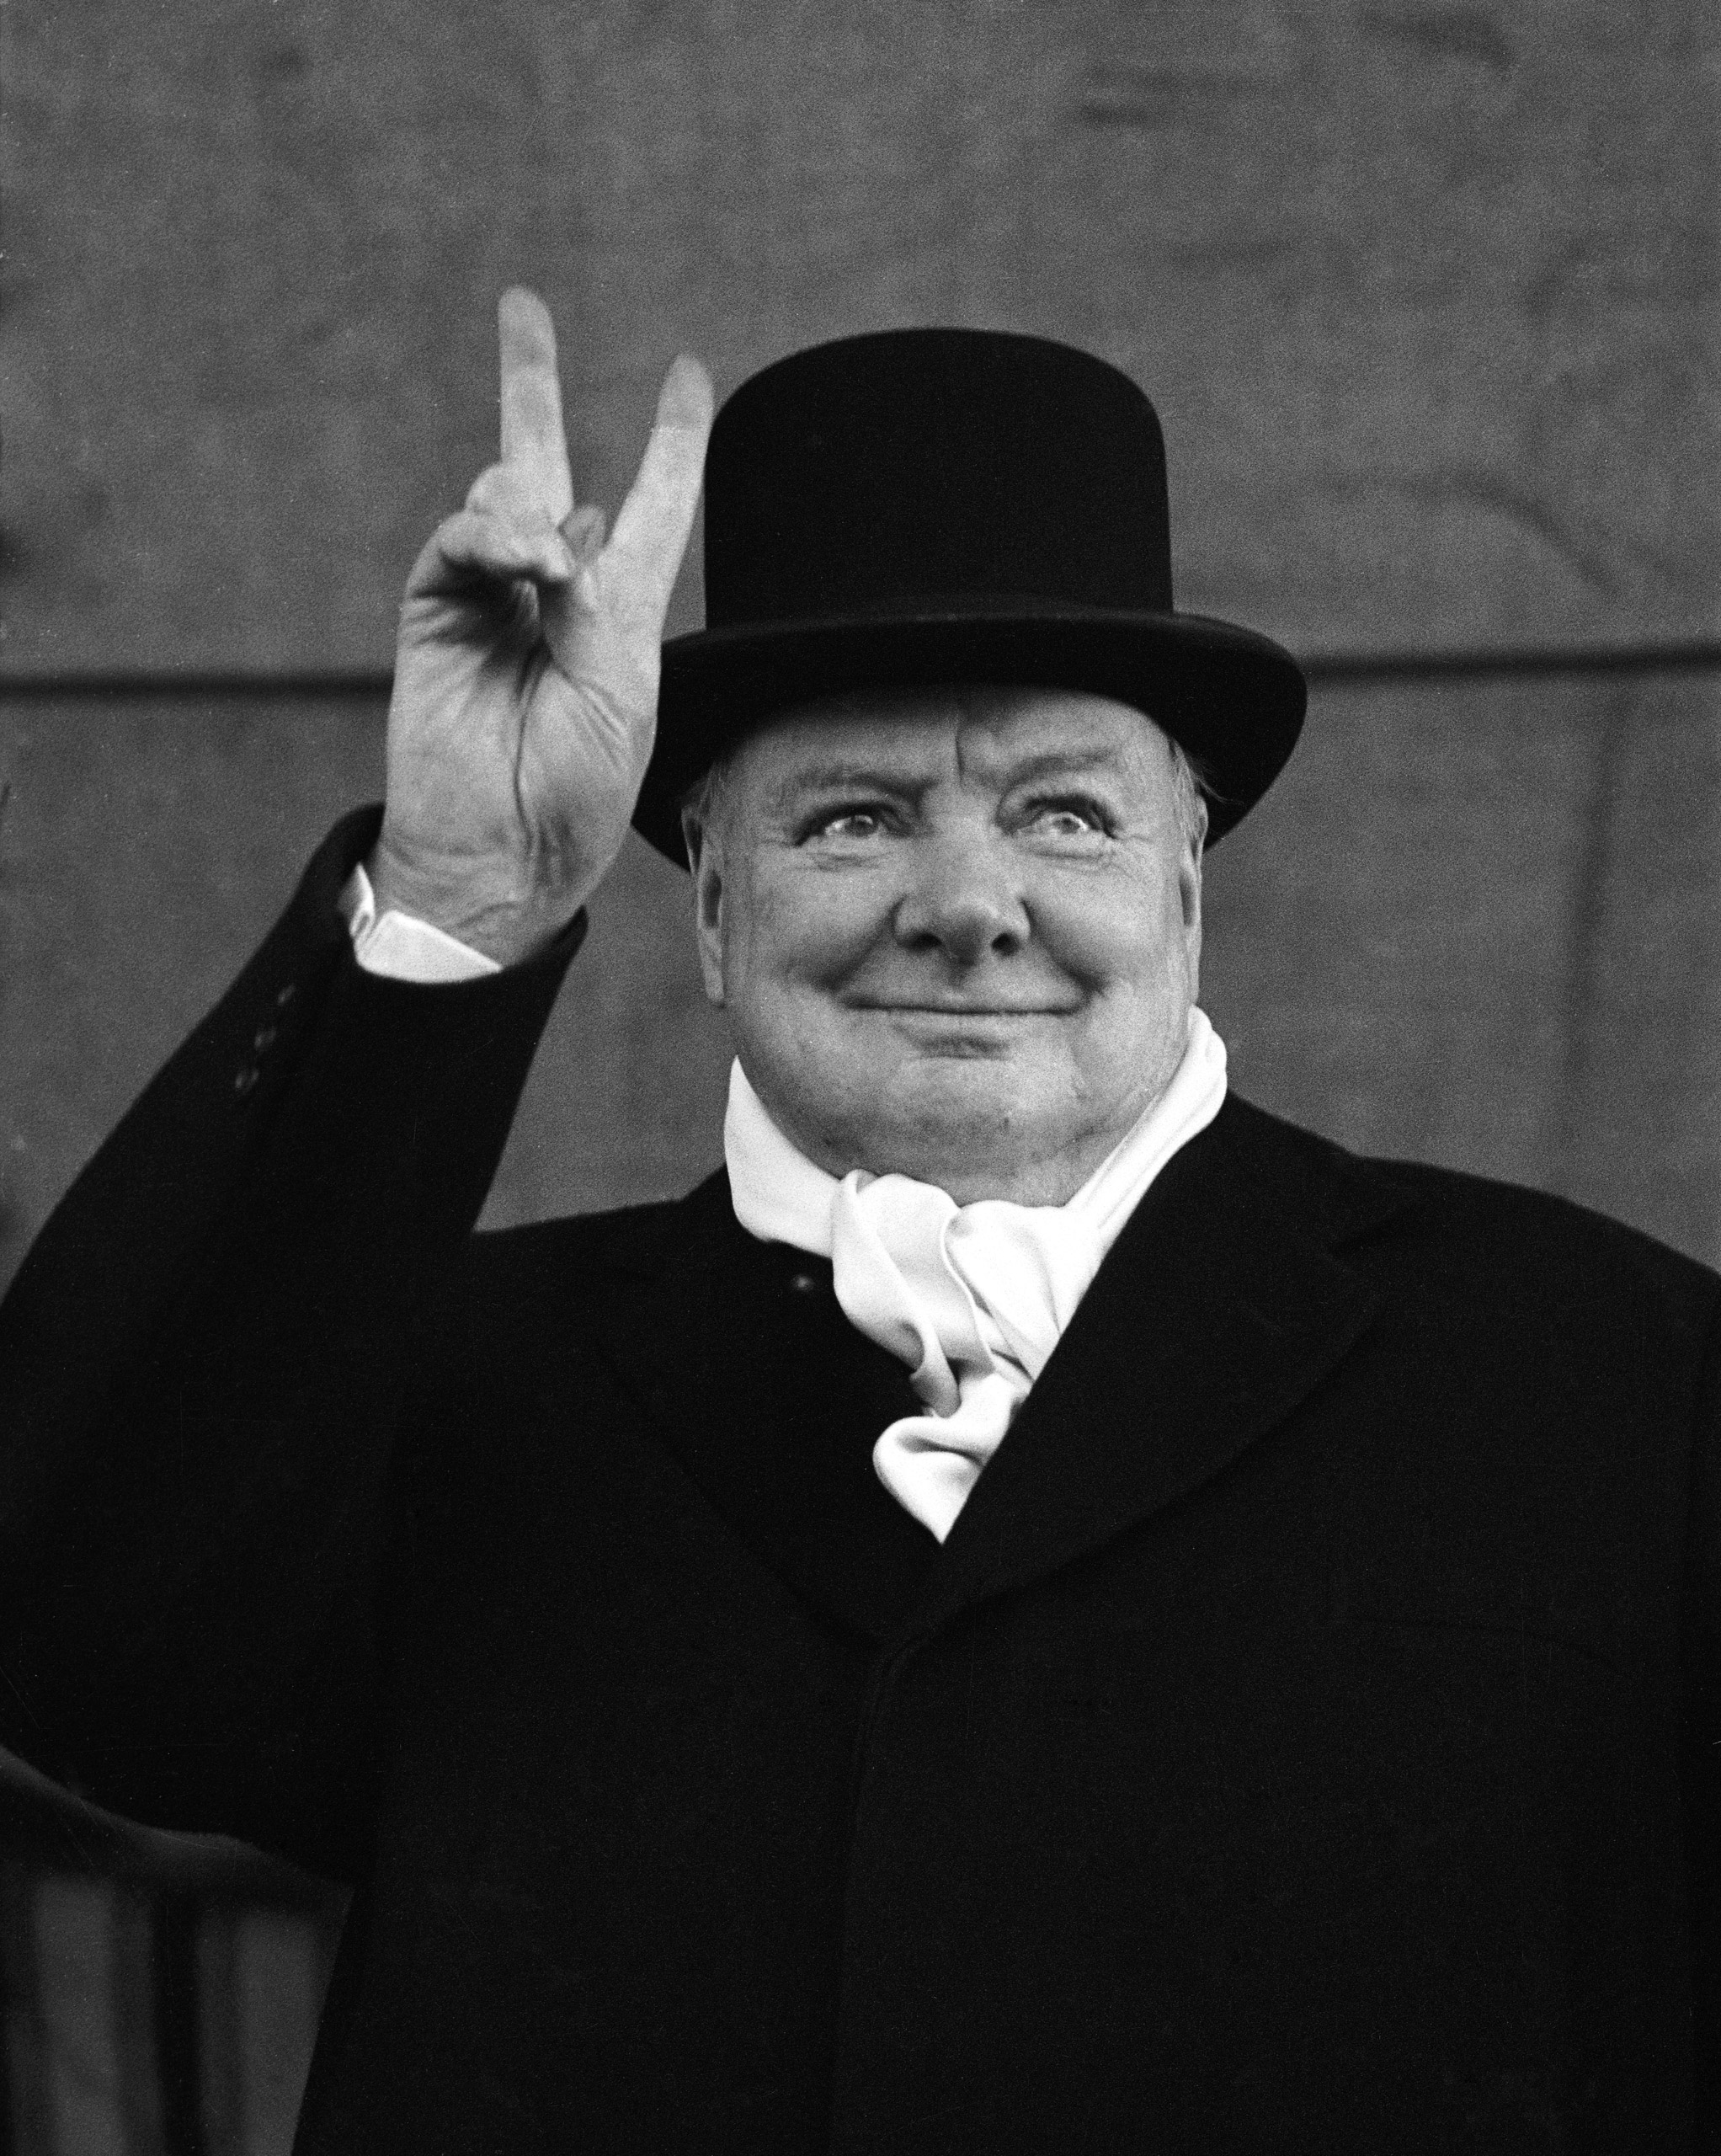 """If you can hold your fingers in a """"V for victory"""" sign all night, grab a top hat and white scarf to complete the look of Winston Churchill in 1951."""